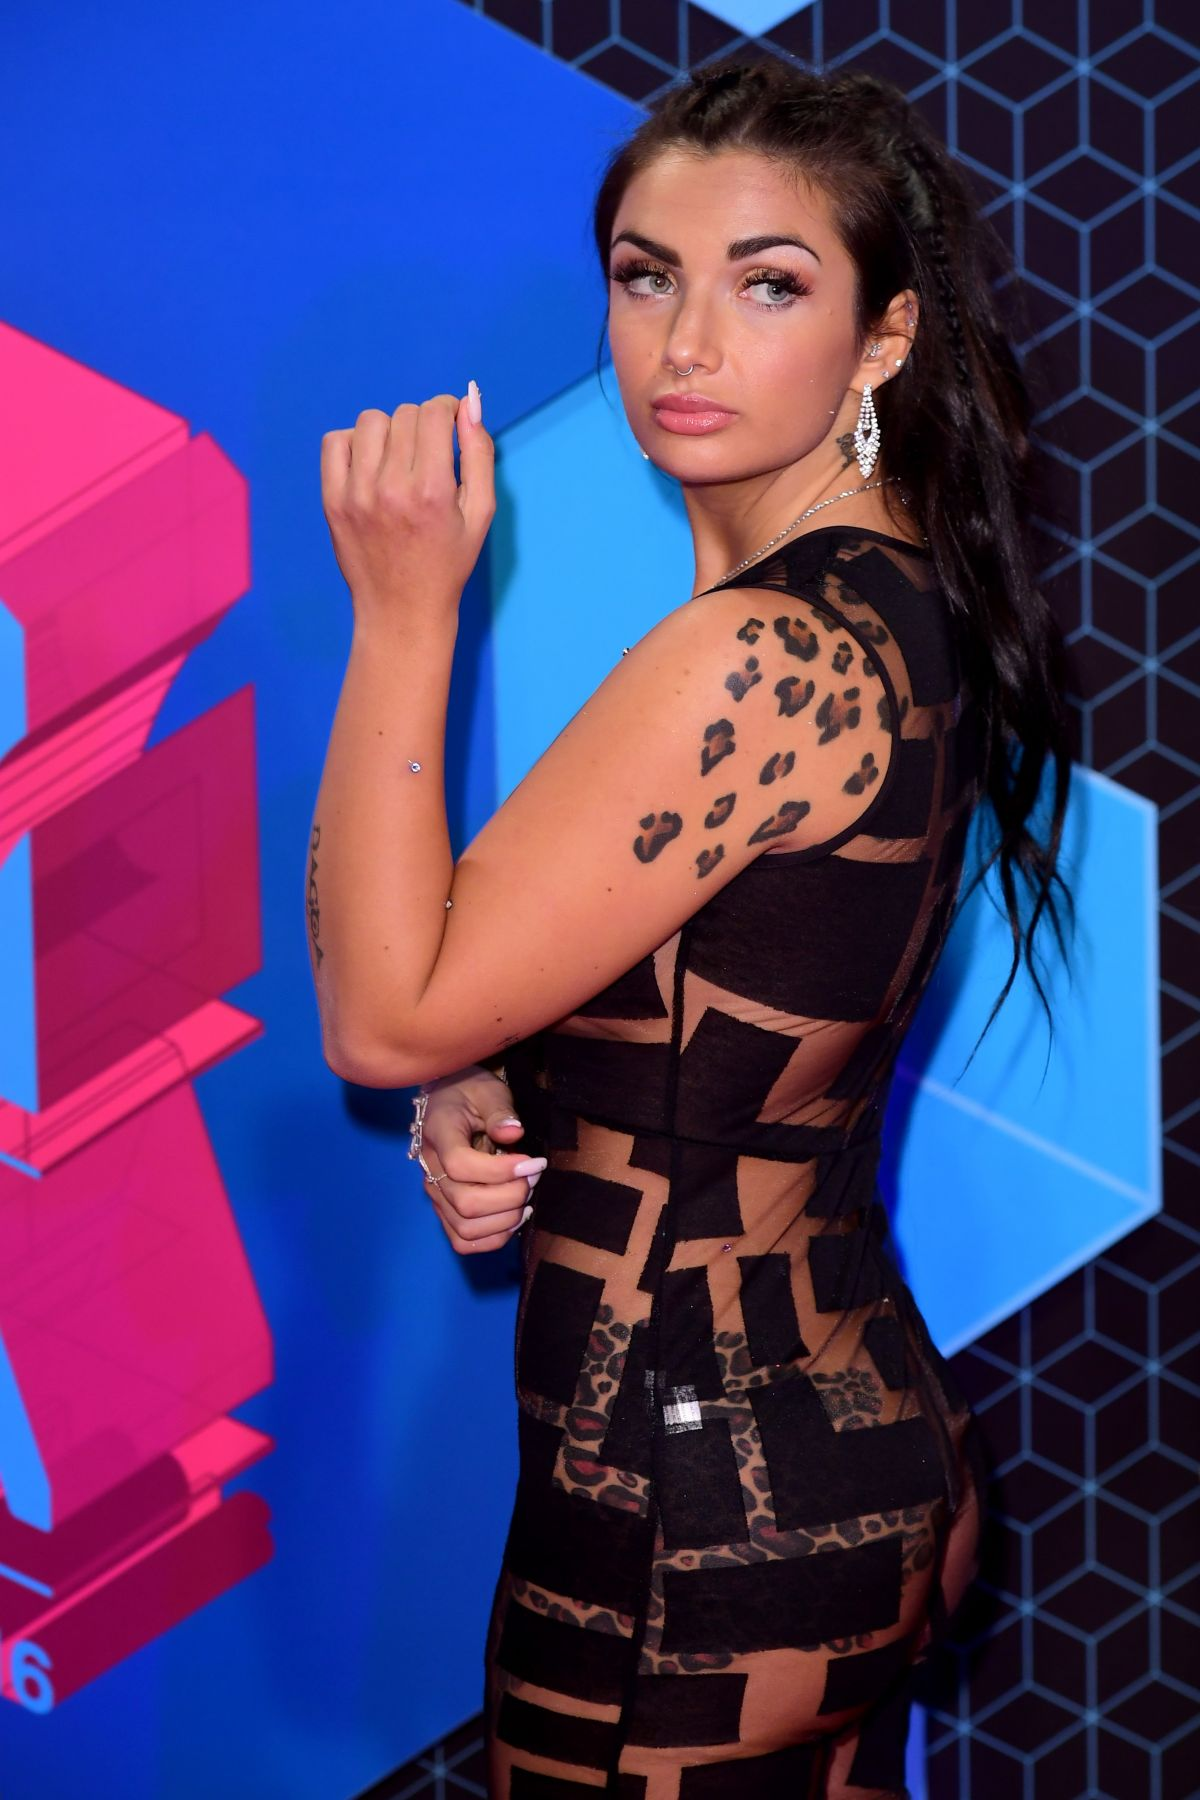 Elettra Lamborghini At the MTV Europe Music Awards 2016 in